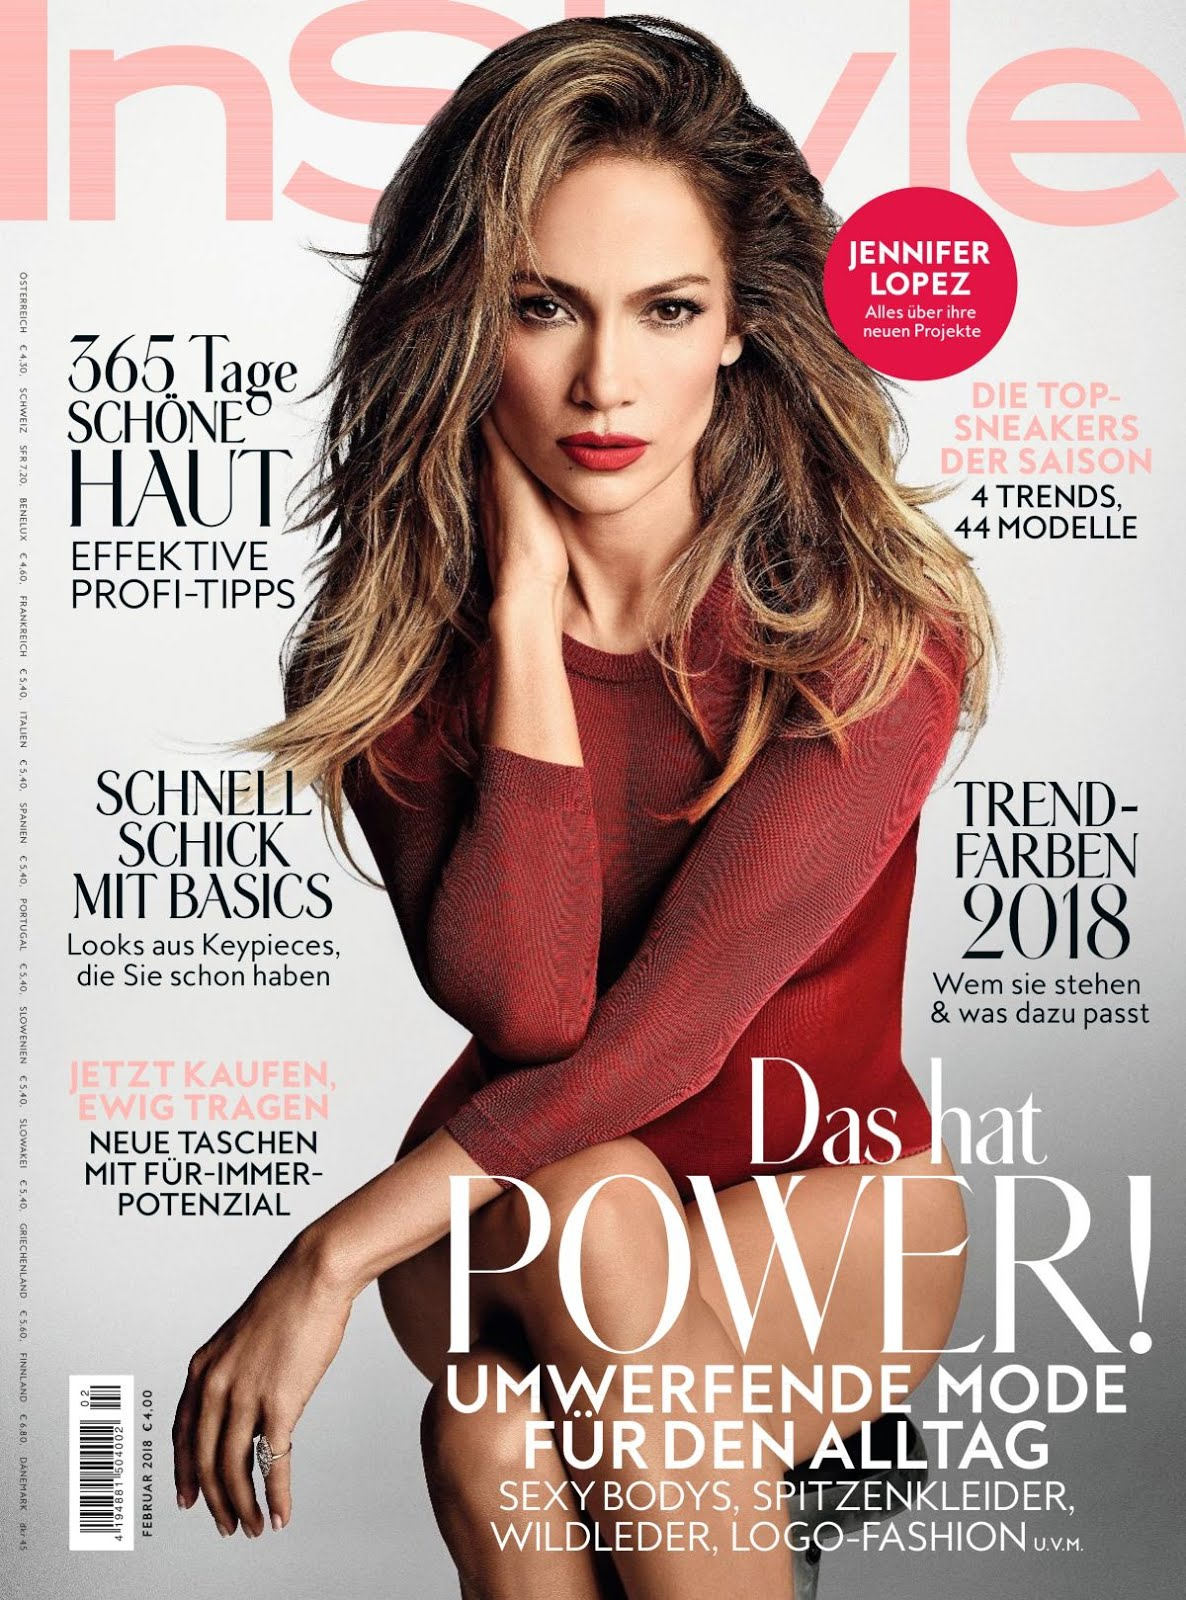 Instyle Magazine Us: Jennifer Lopez In Instyle Magazine Germany February 2018